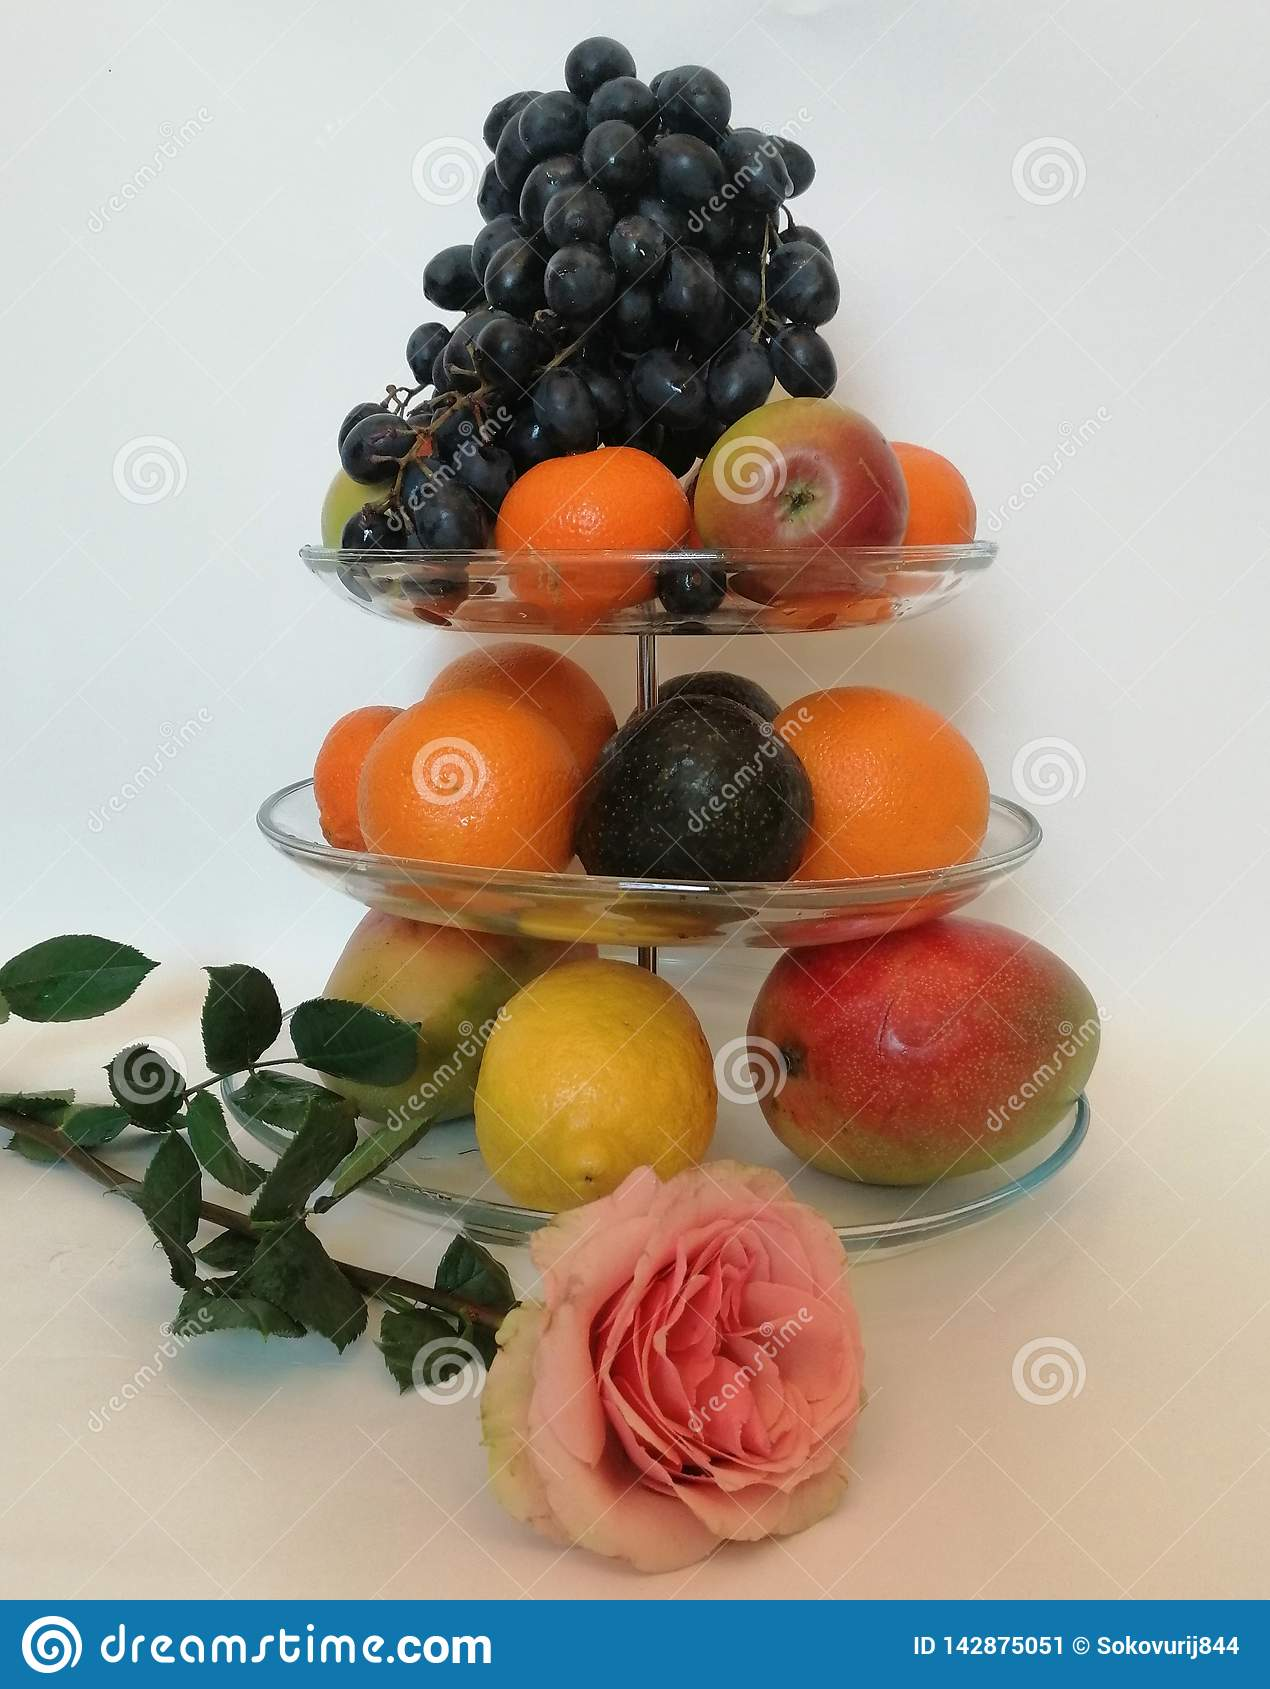 Fruit on a glass plate